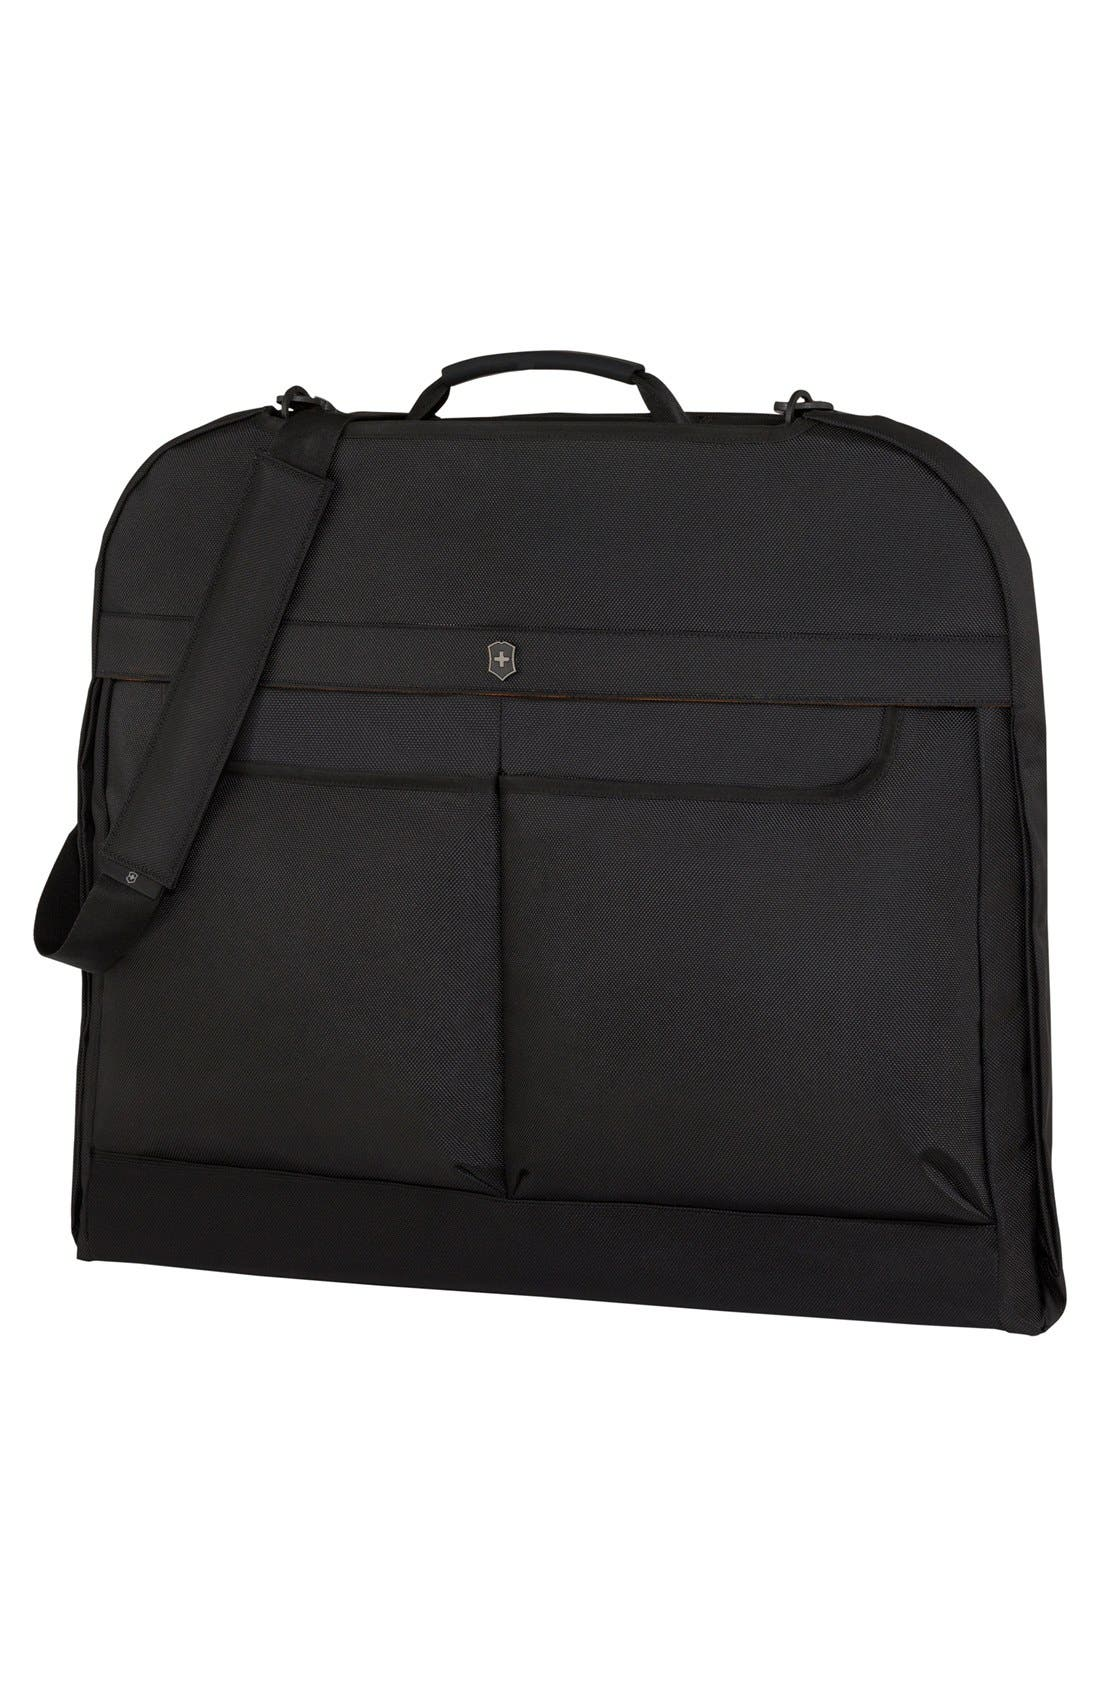 Victorinox Swiss Army® WT 5.0 Deluxe Garment Bag